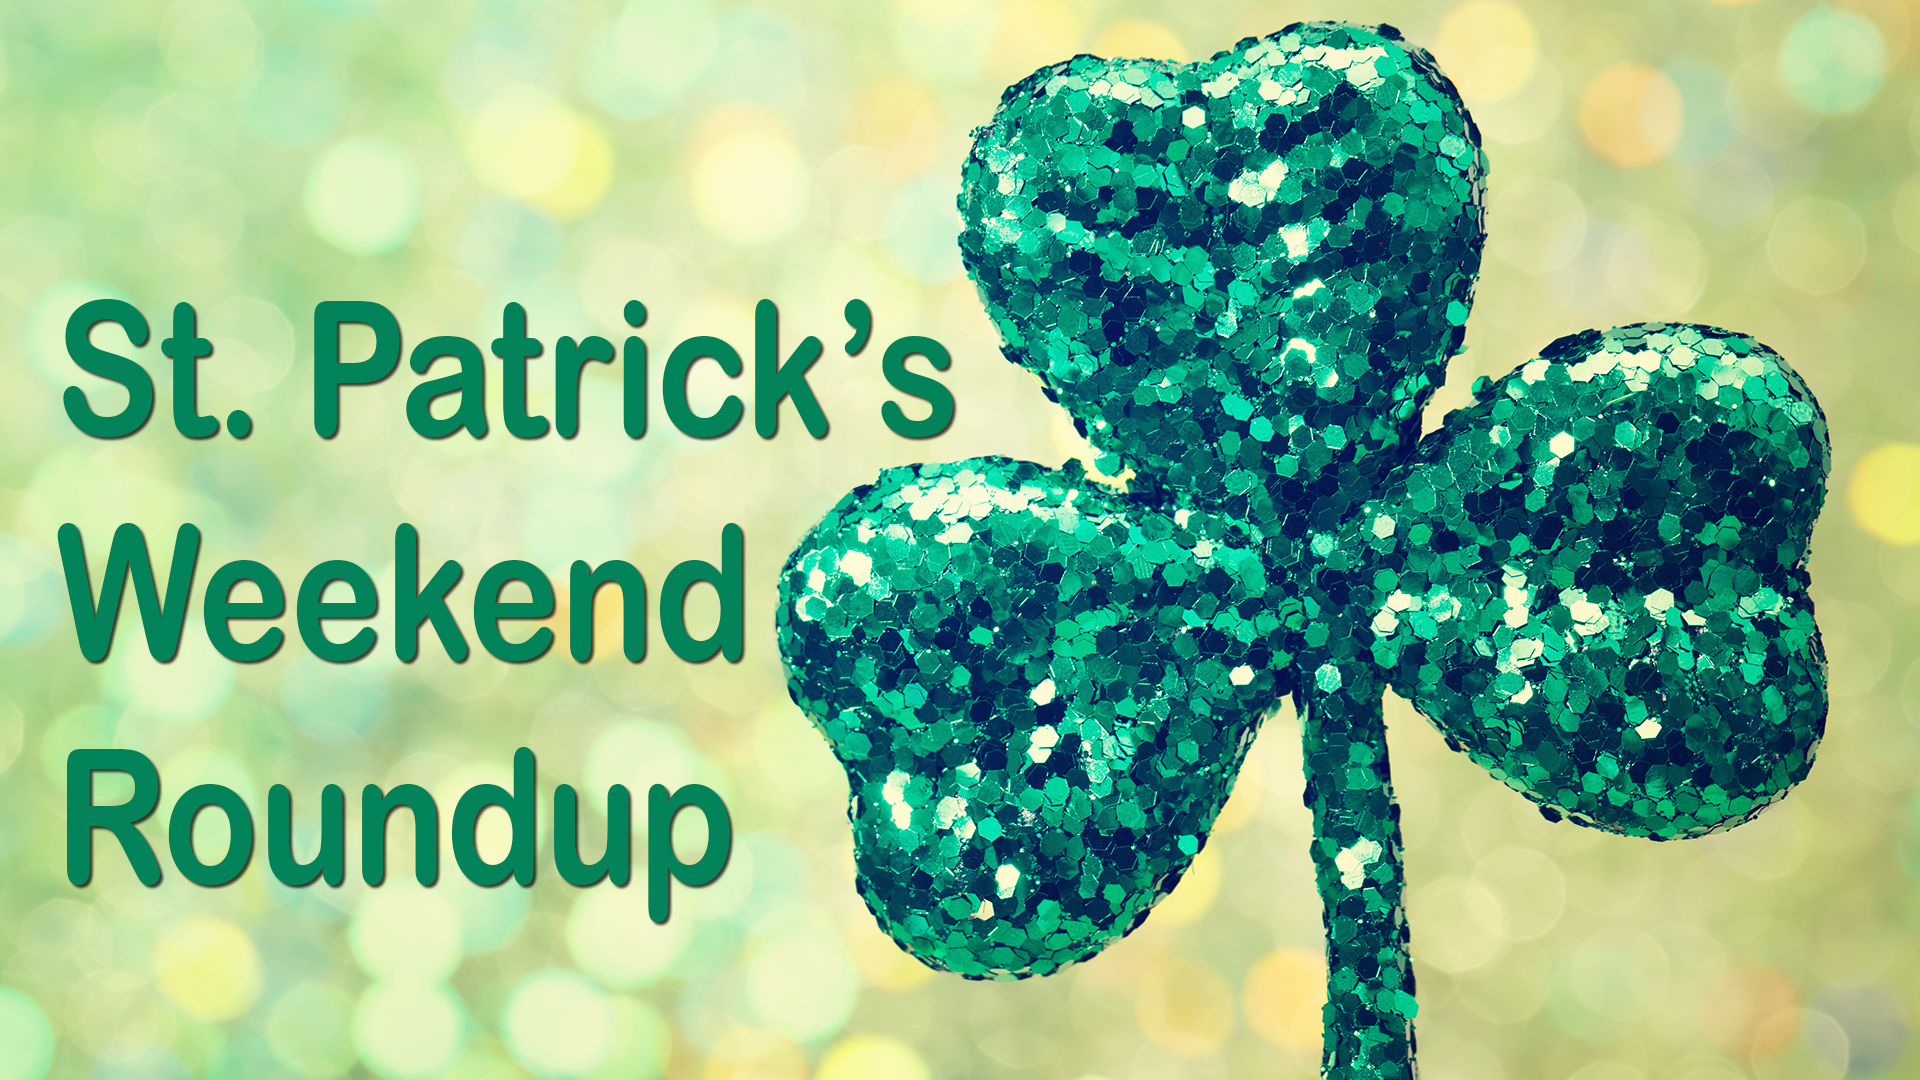 St. Patrick's Weekend Roundup: All the music, parties and green beer you can stand